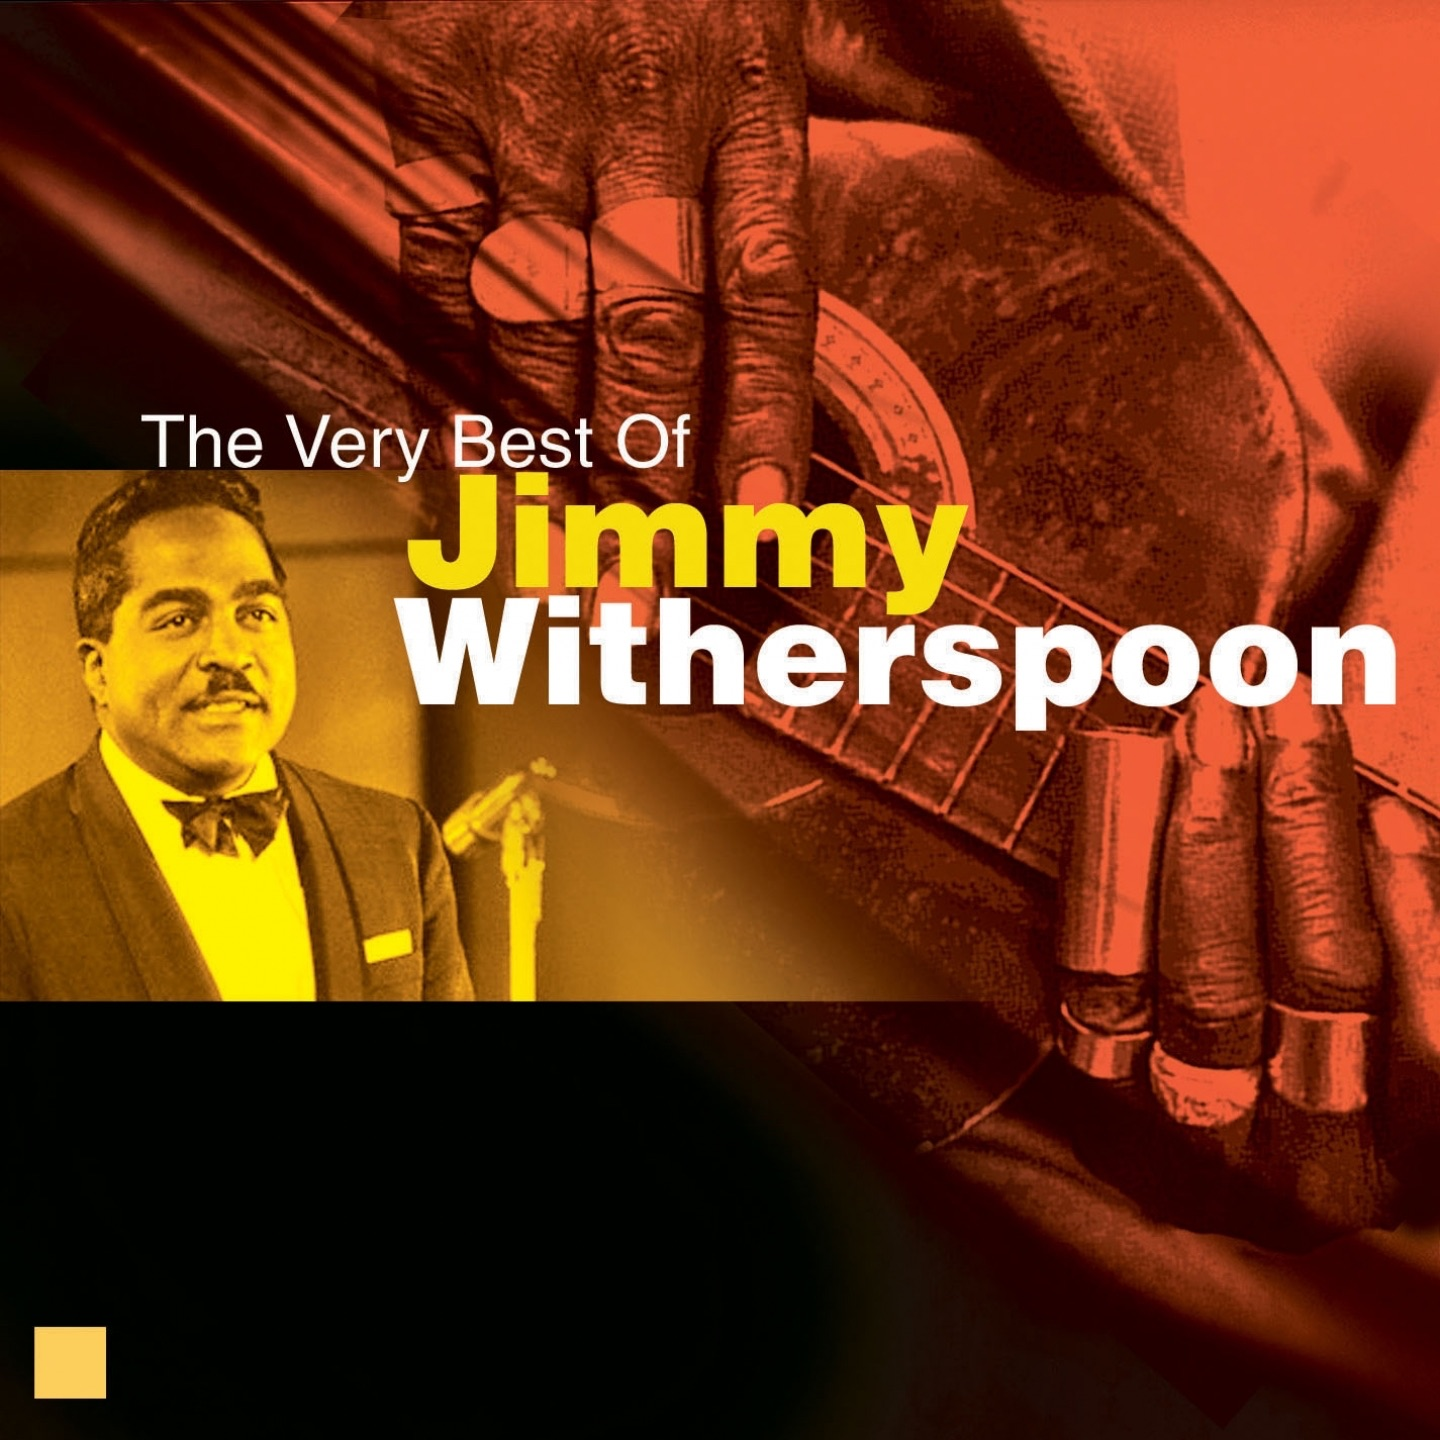 The Very Best of Jimmy Witherspoon